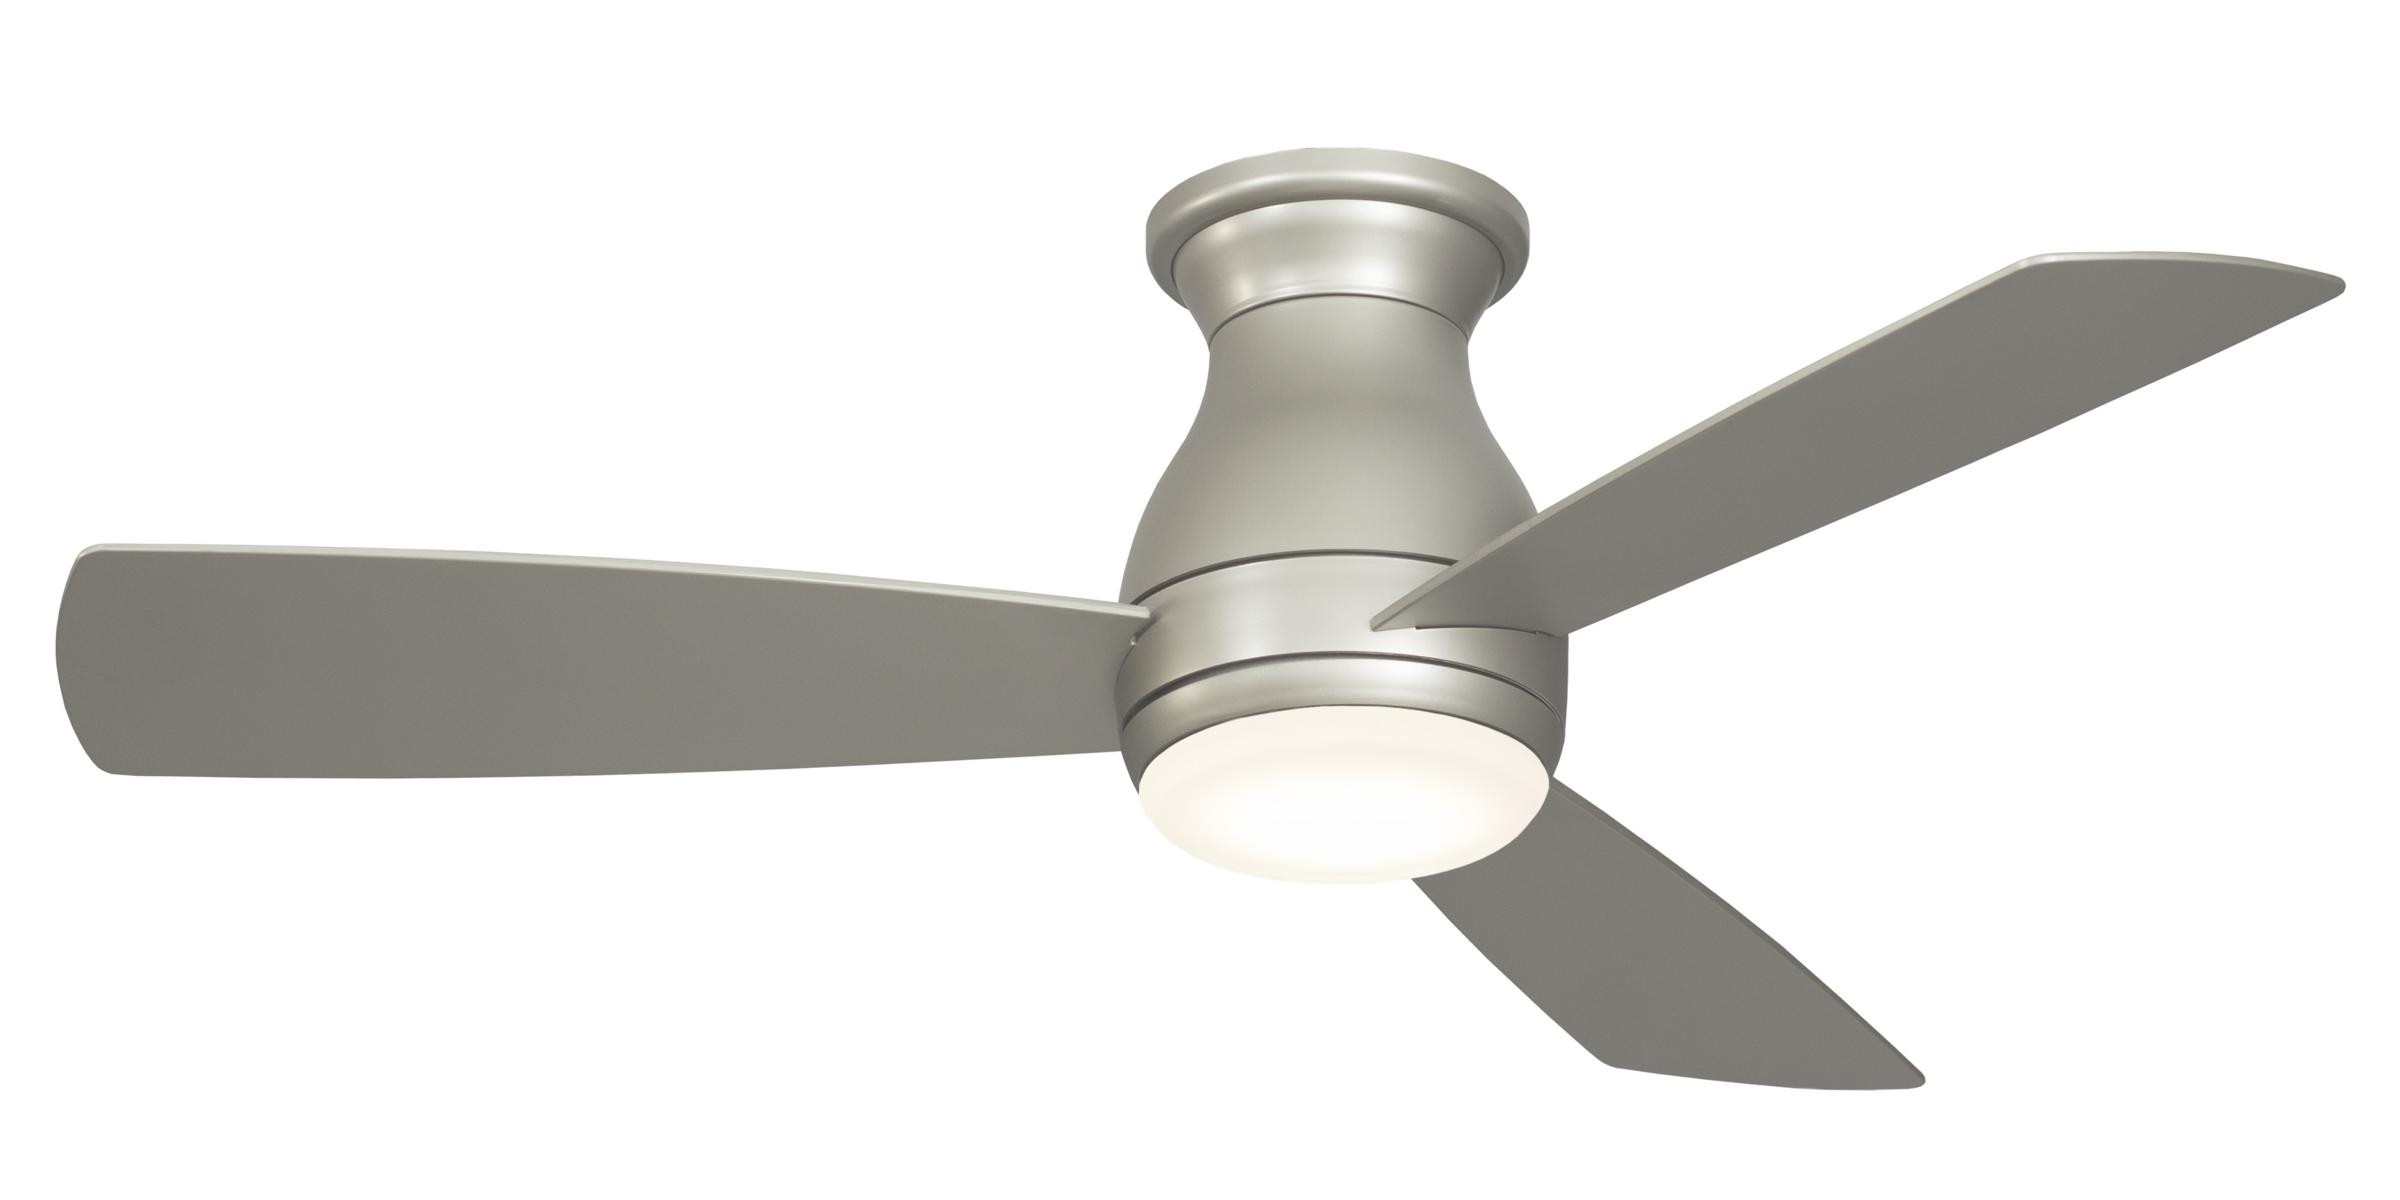 Fanimation Hugh 44 Ceiling Fan Model Fps8332Bnw In Brushed Nickel Within Widely Used Outdoor Ceiling Fans For Windy Areas (View 20 of 20)